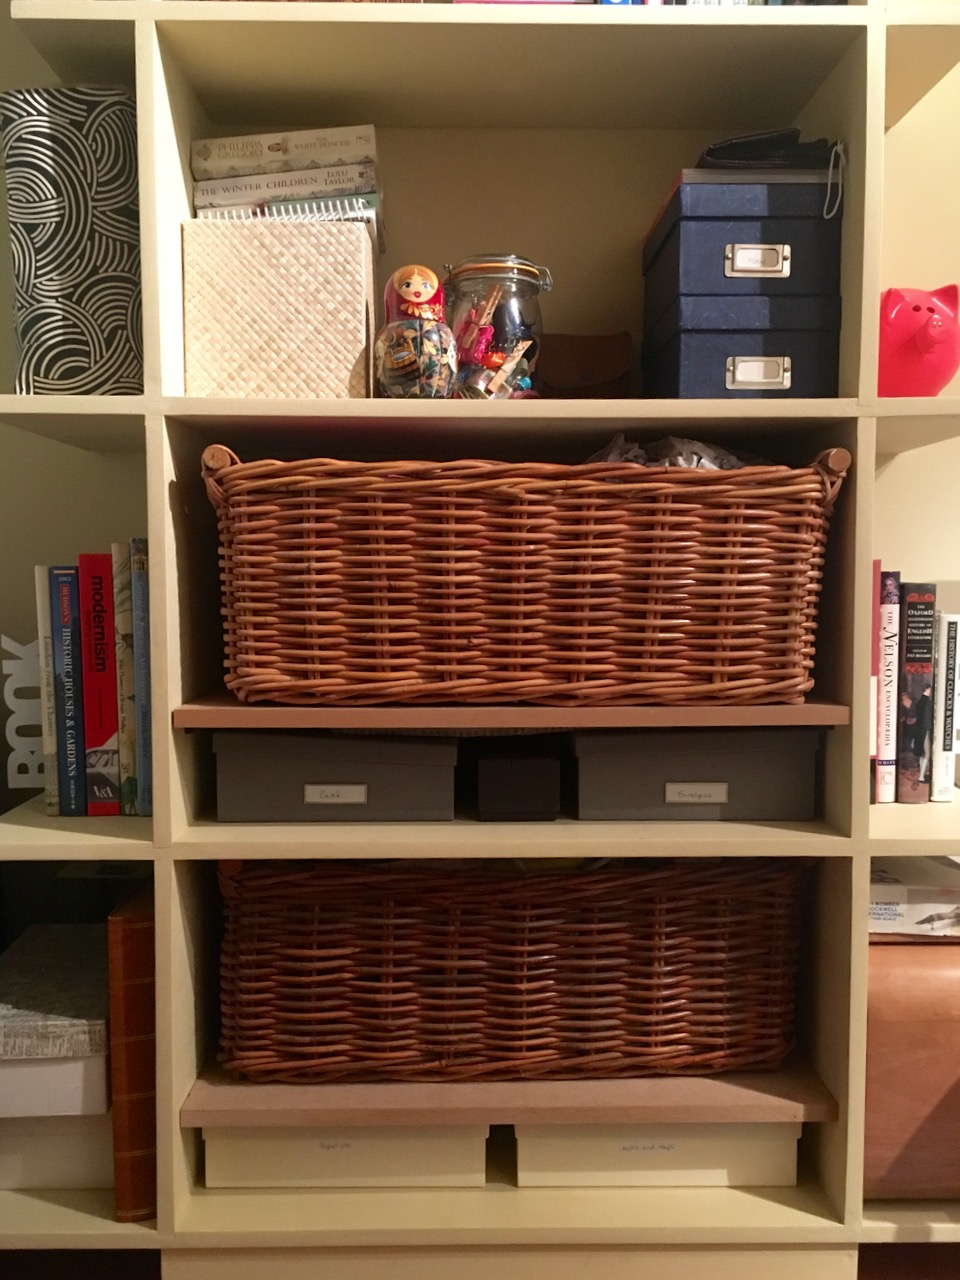 baskets shelves and boxes makes me happy